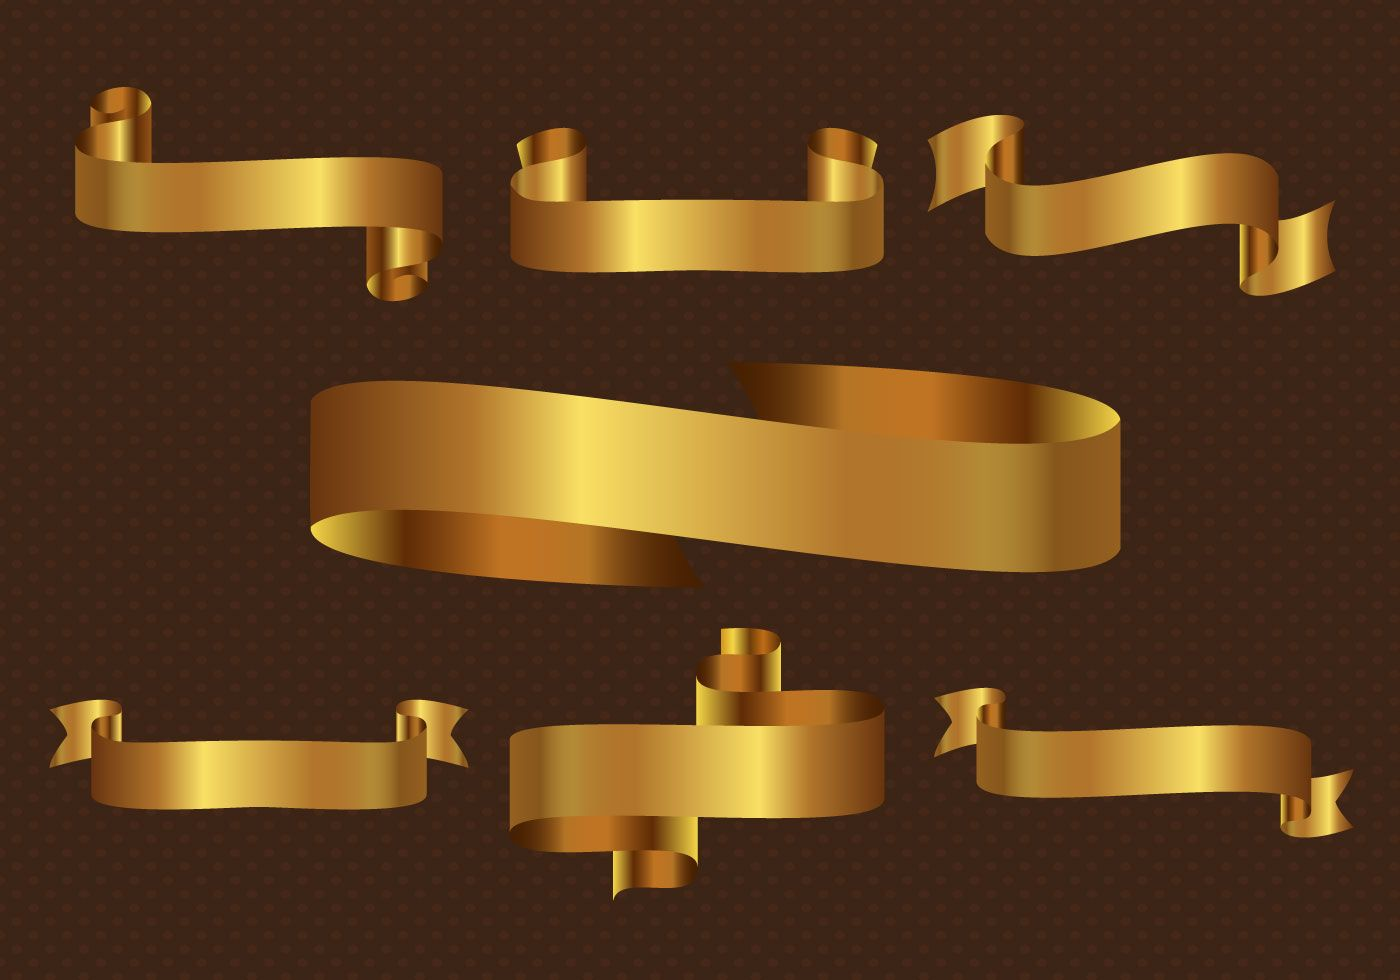 Gold Ribbon Collection Design For Your Use Gold Ribbons Gold Vector